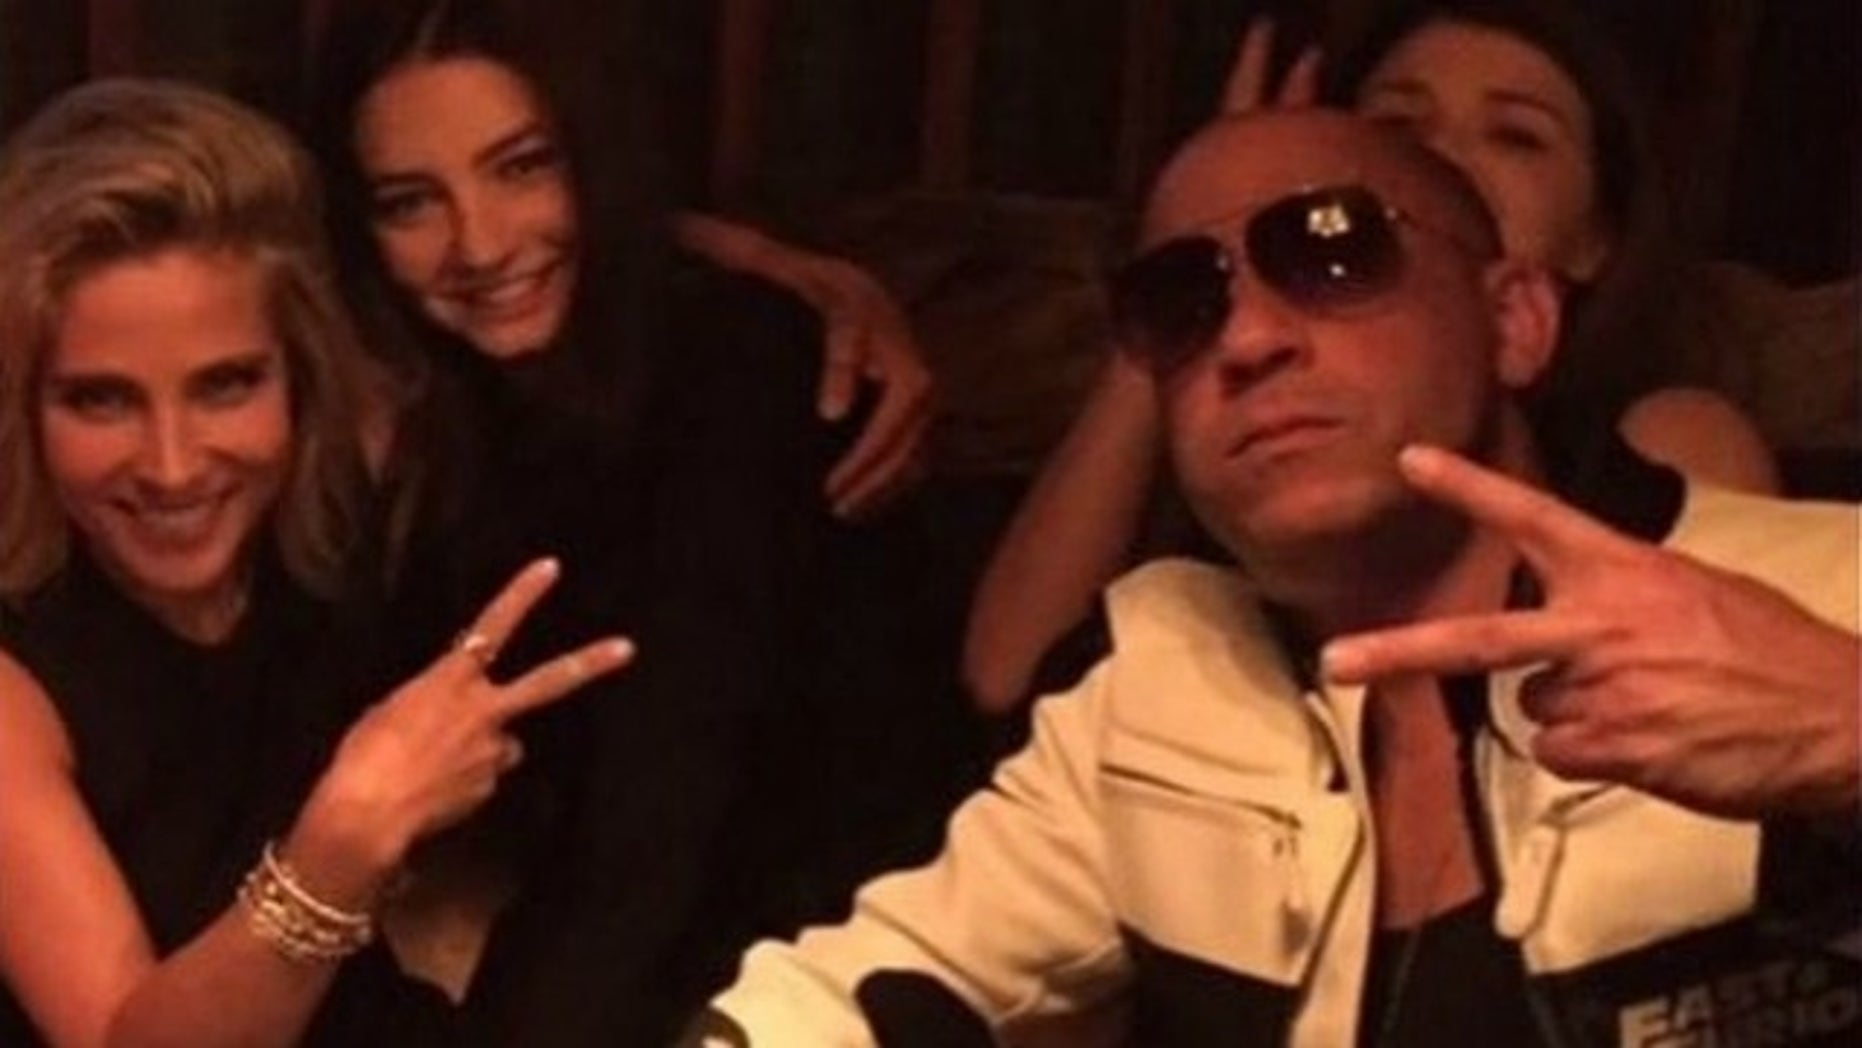 """Paul Walker's daughter Meadow poses for Instagram photo with """"Furious 7"""" stars Vin Diesel and Elsa Pataky."""